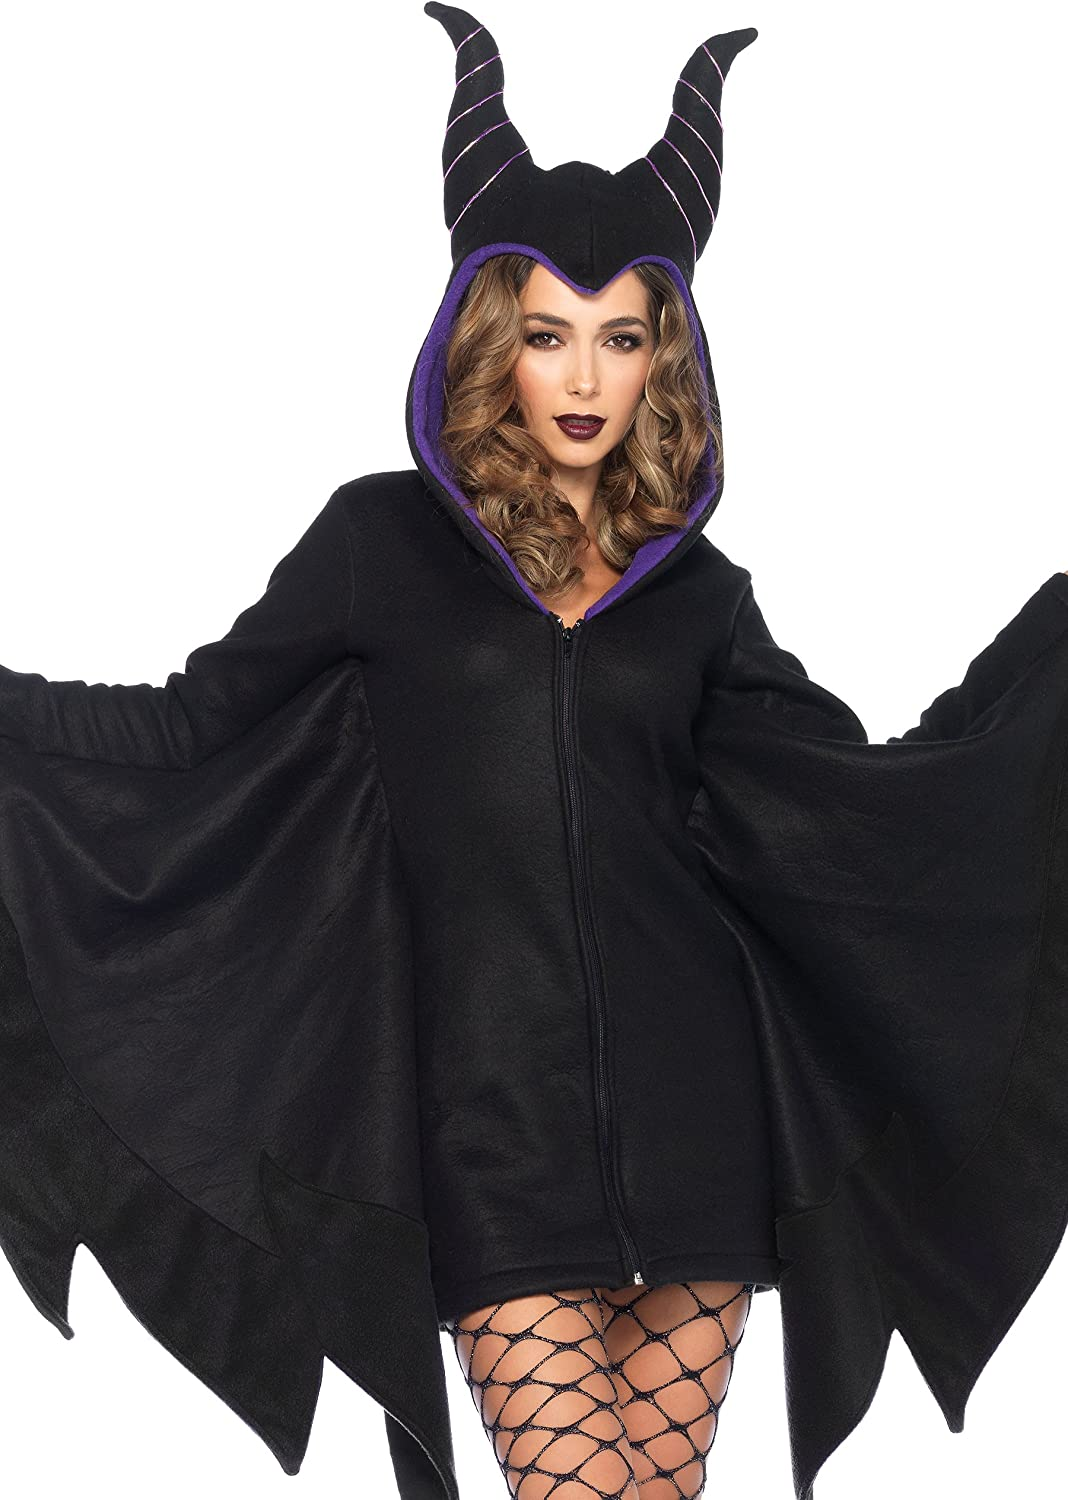 Leg Avenue Cozy Villain Maleficent Costume (Medium, Black)